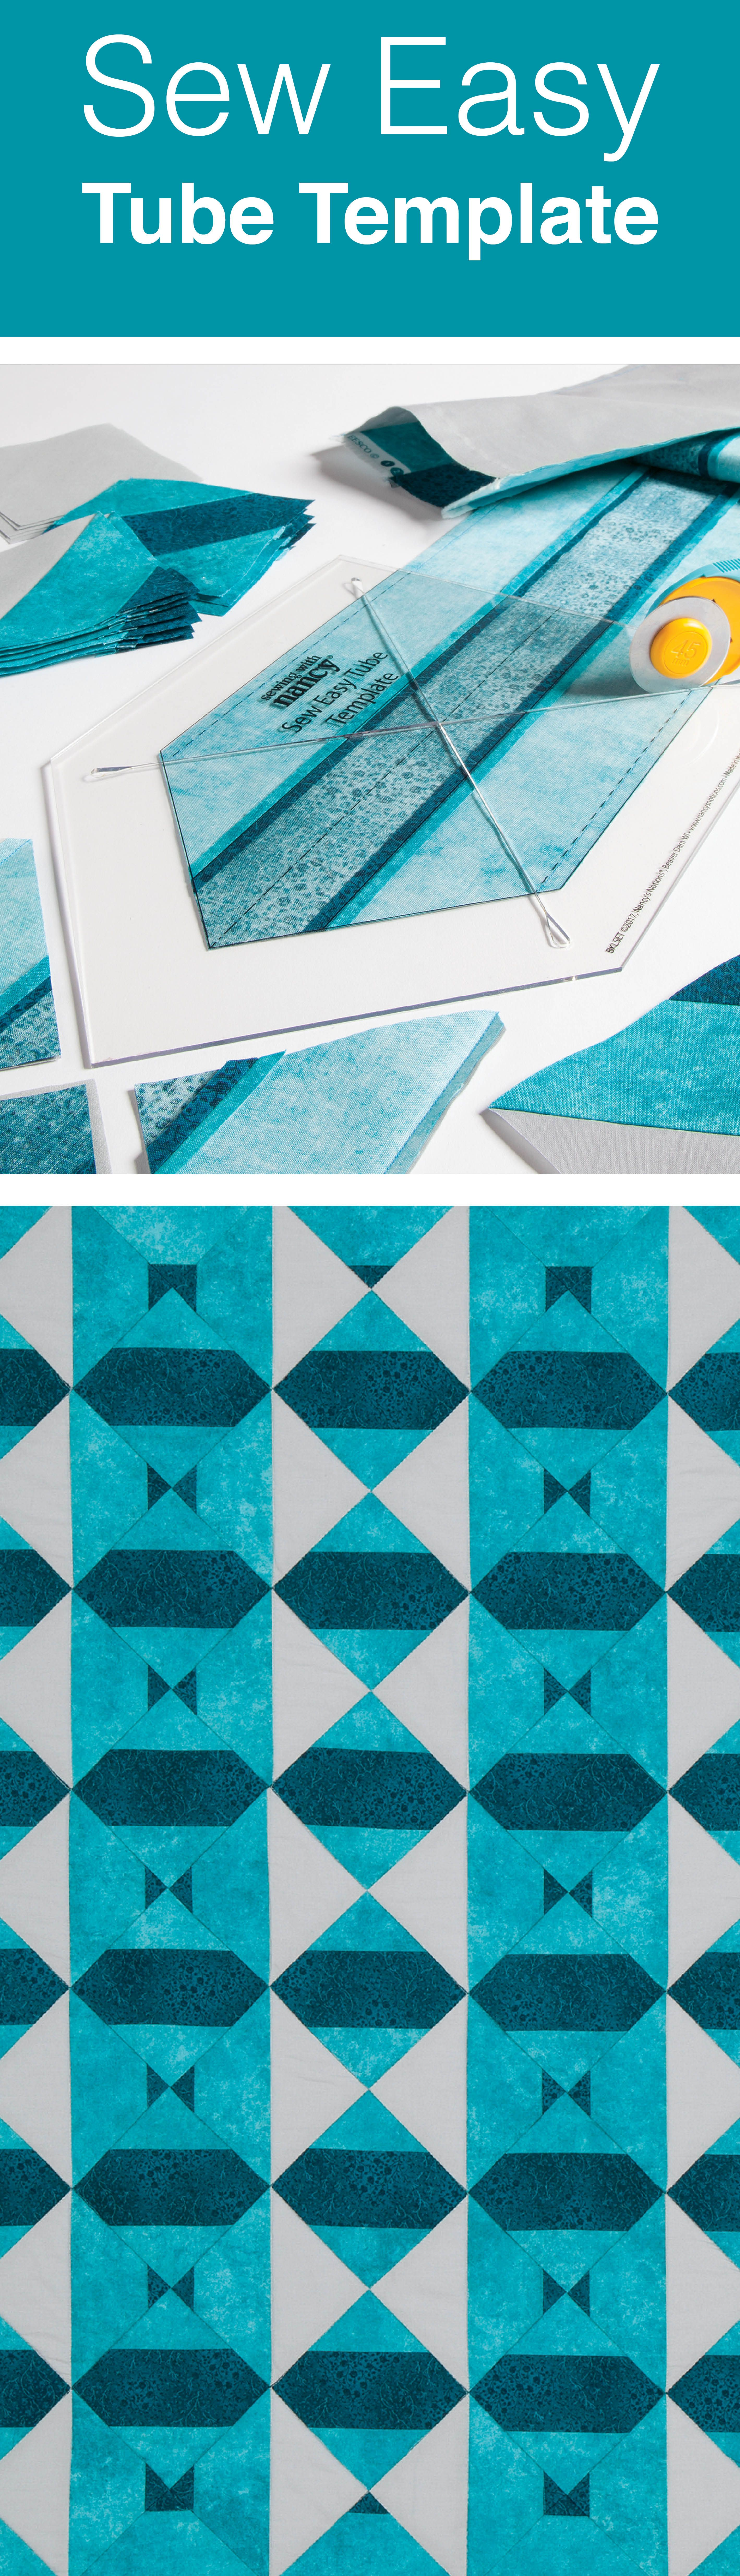 The Sew Easy Tube Template allows you to create striking quilt ...